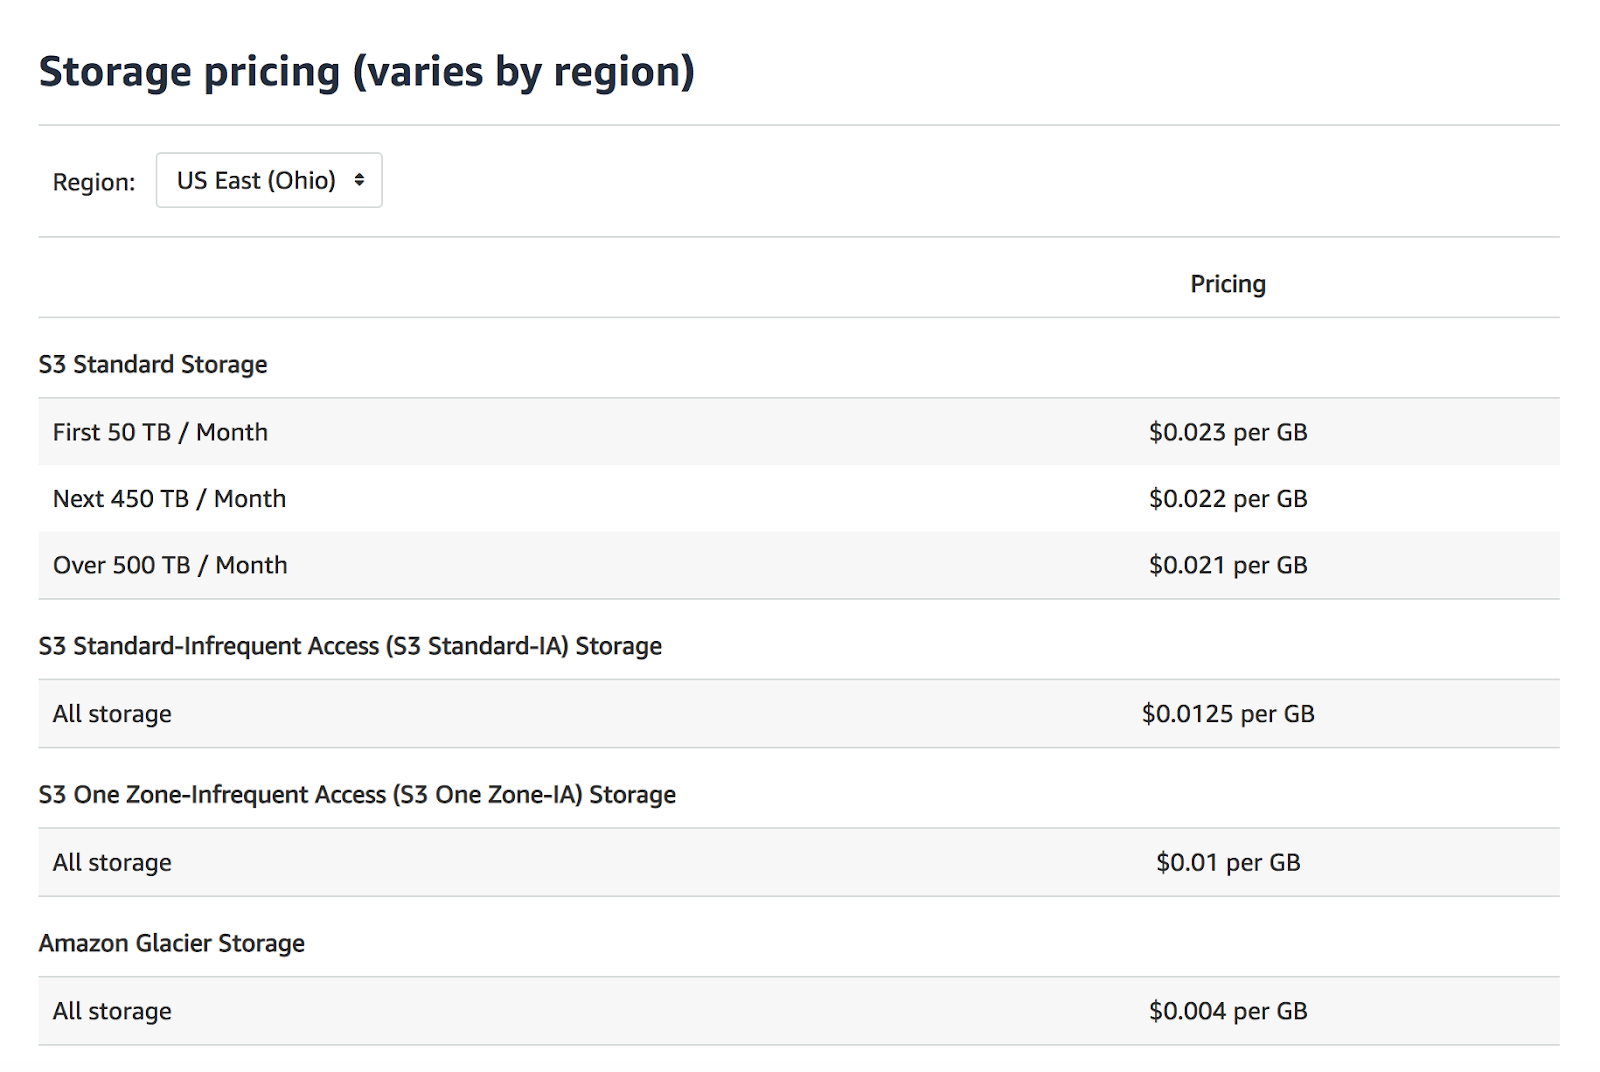 sotrage prices (varies by region)